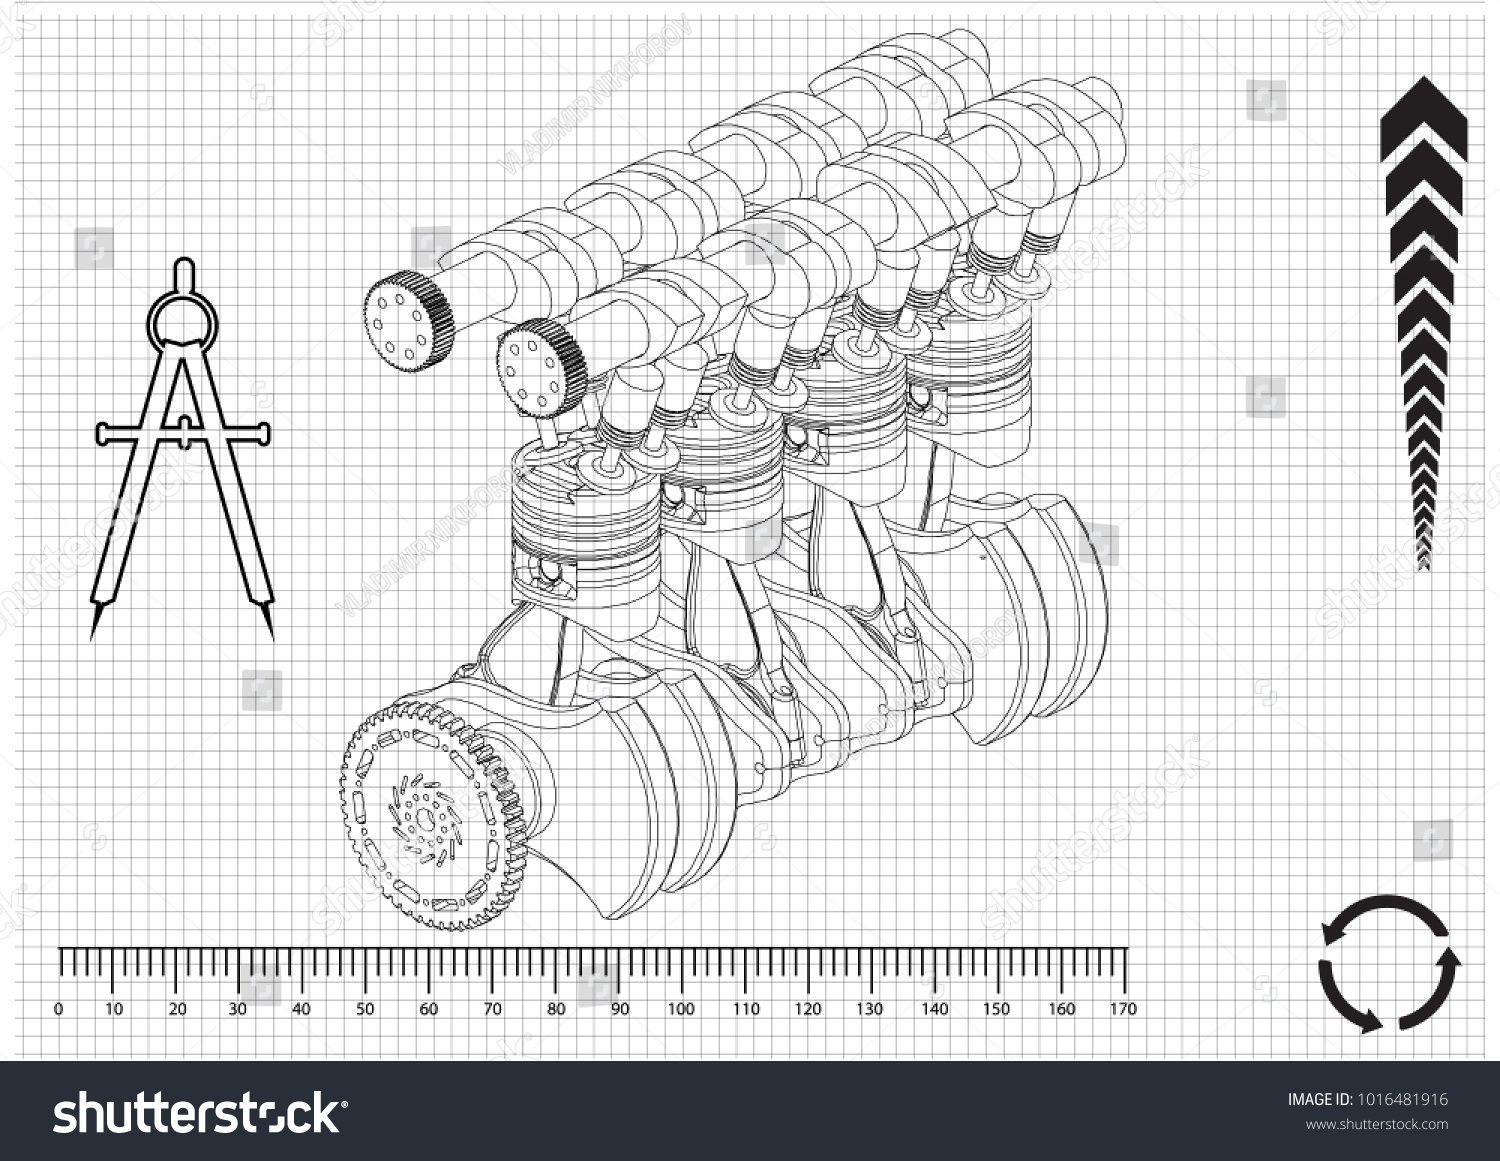 Unusual Car Engine Drawing Gallery - The Best Electrical Circuit ...